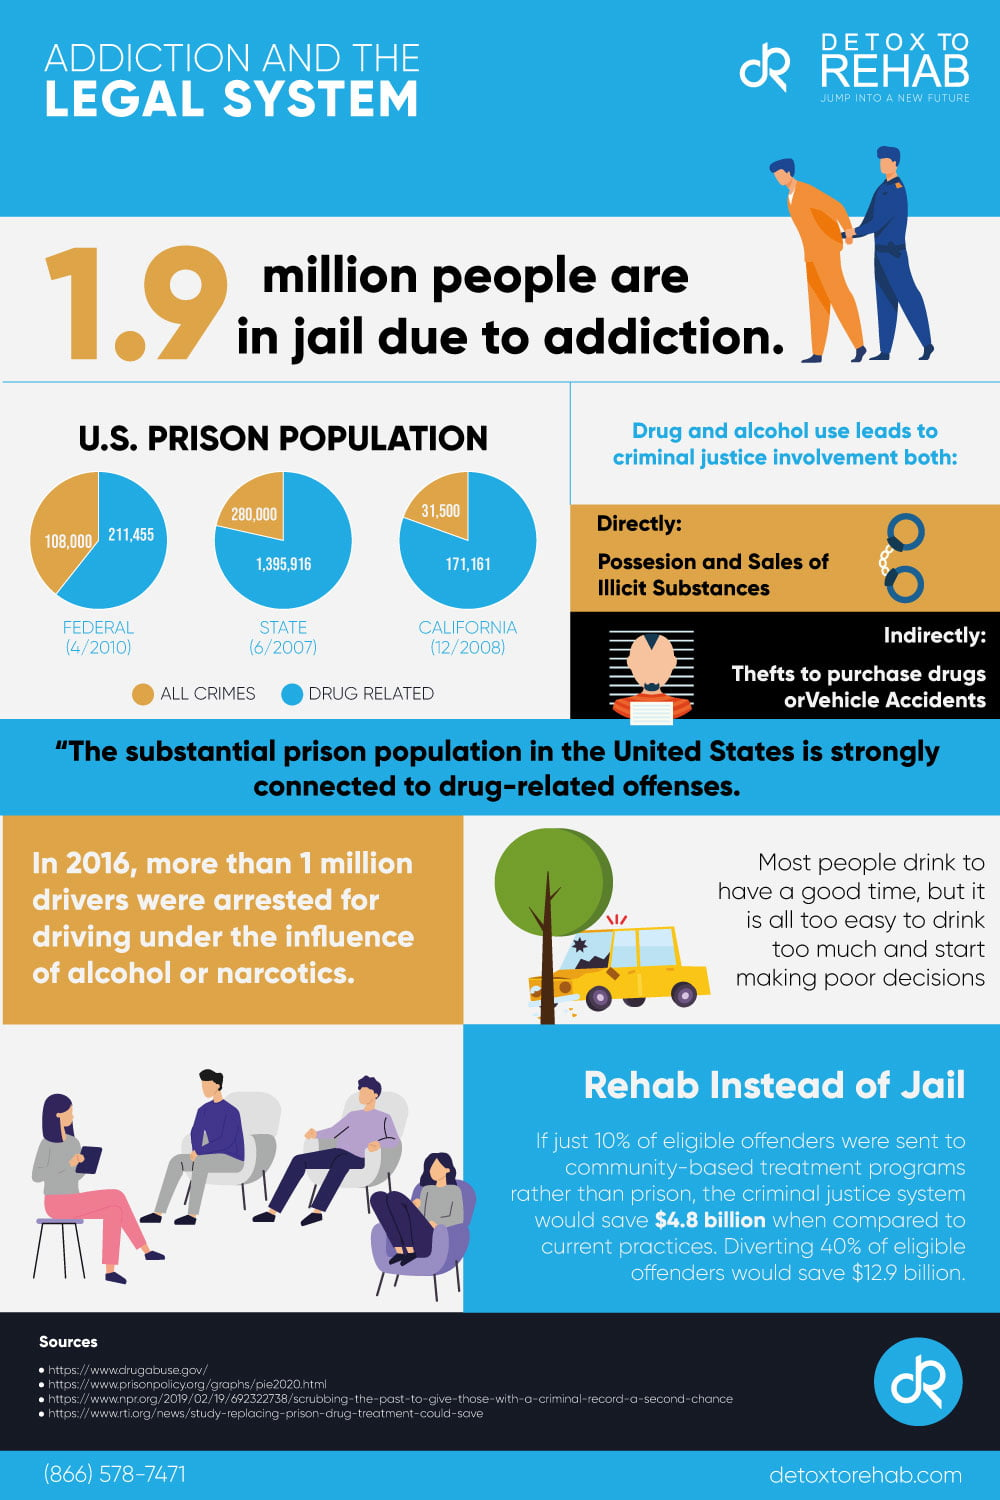 addiction and the legal system infographic